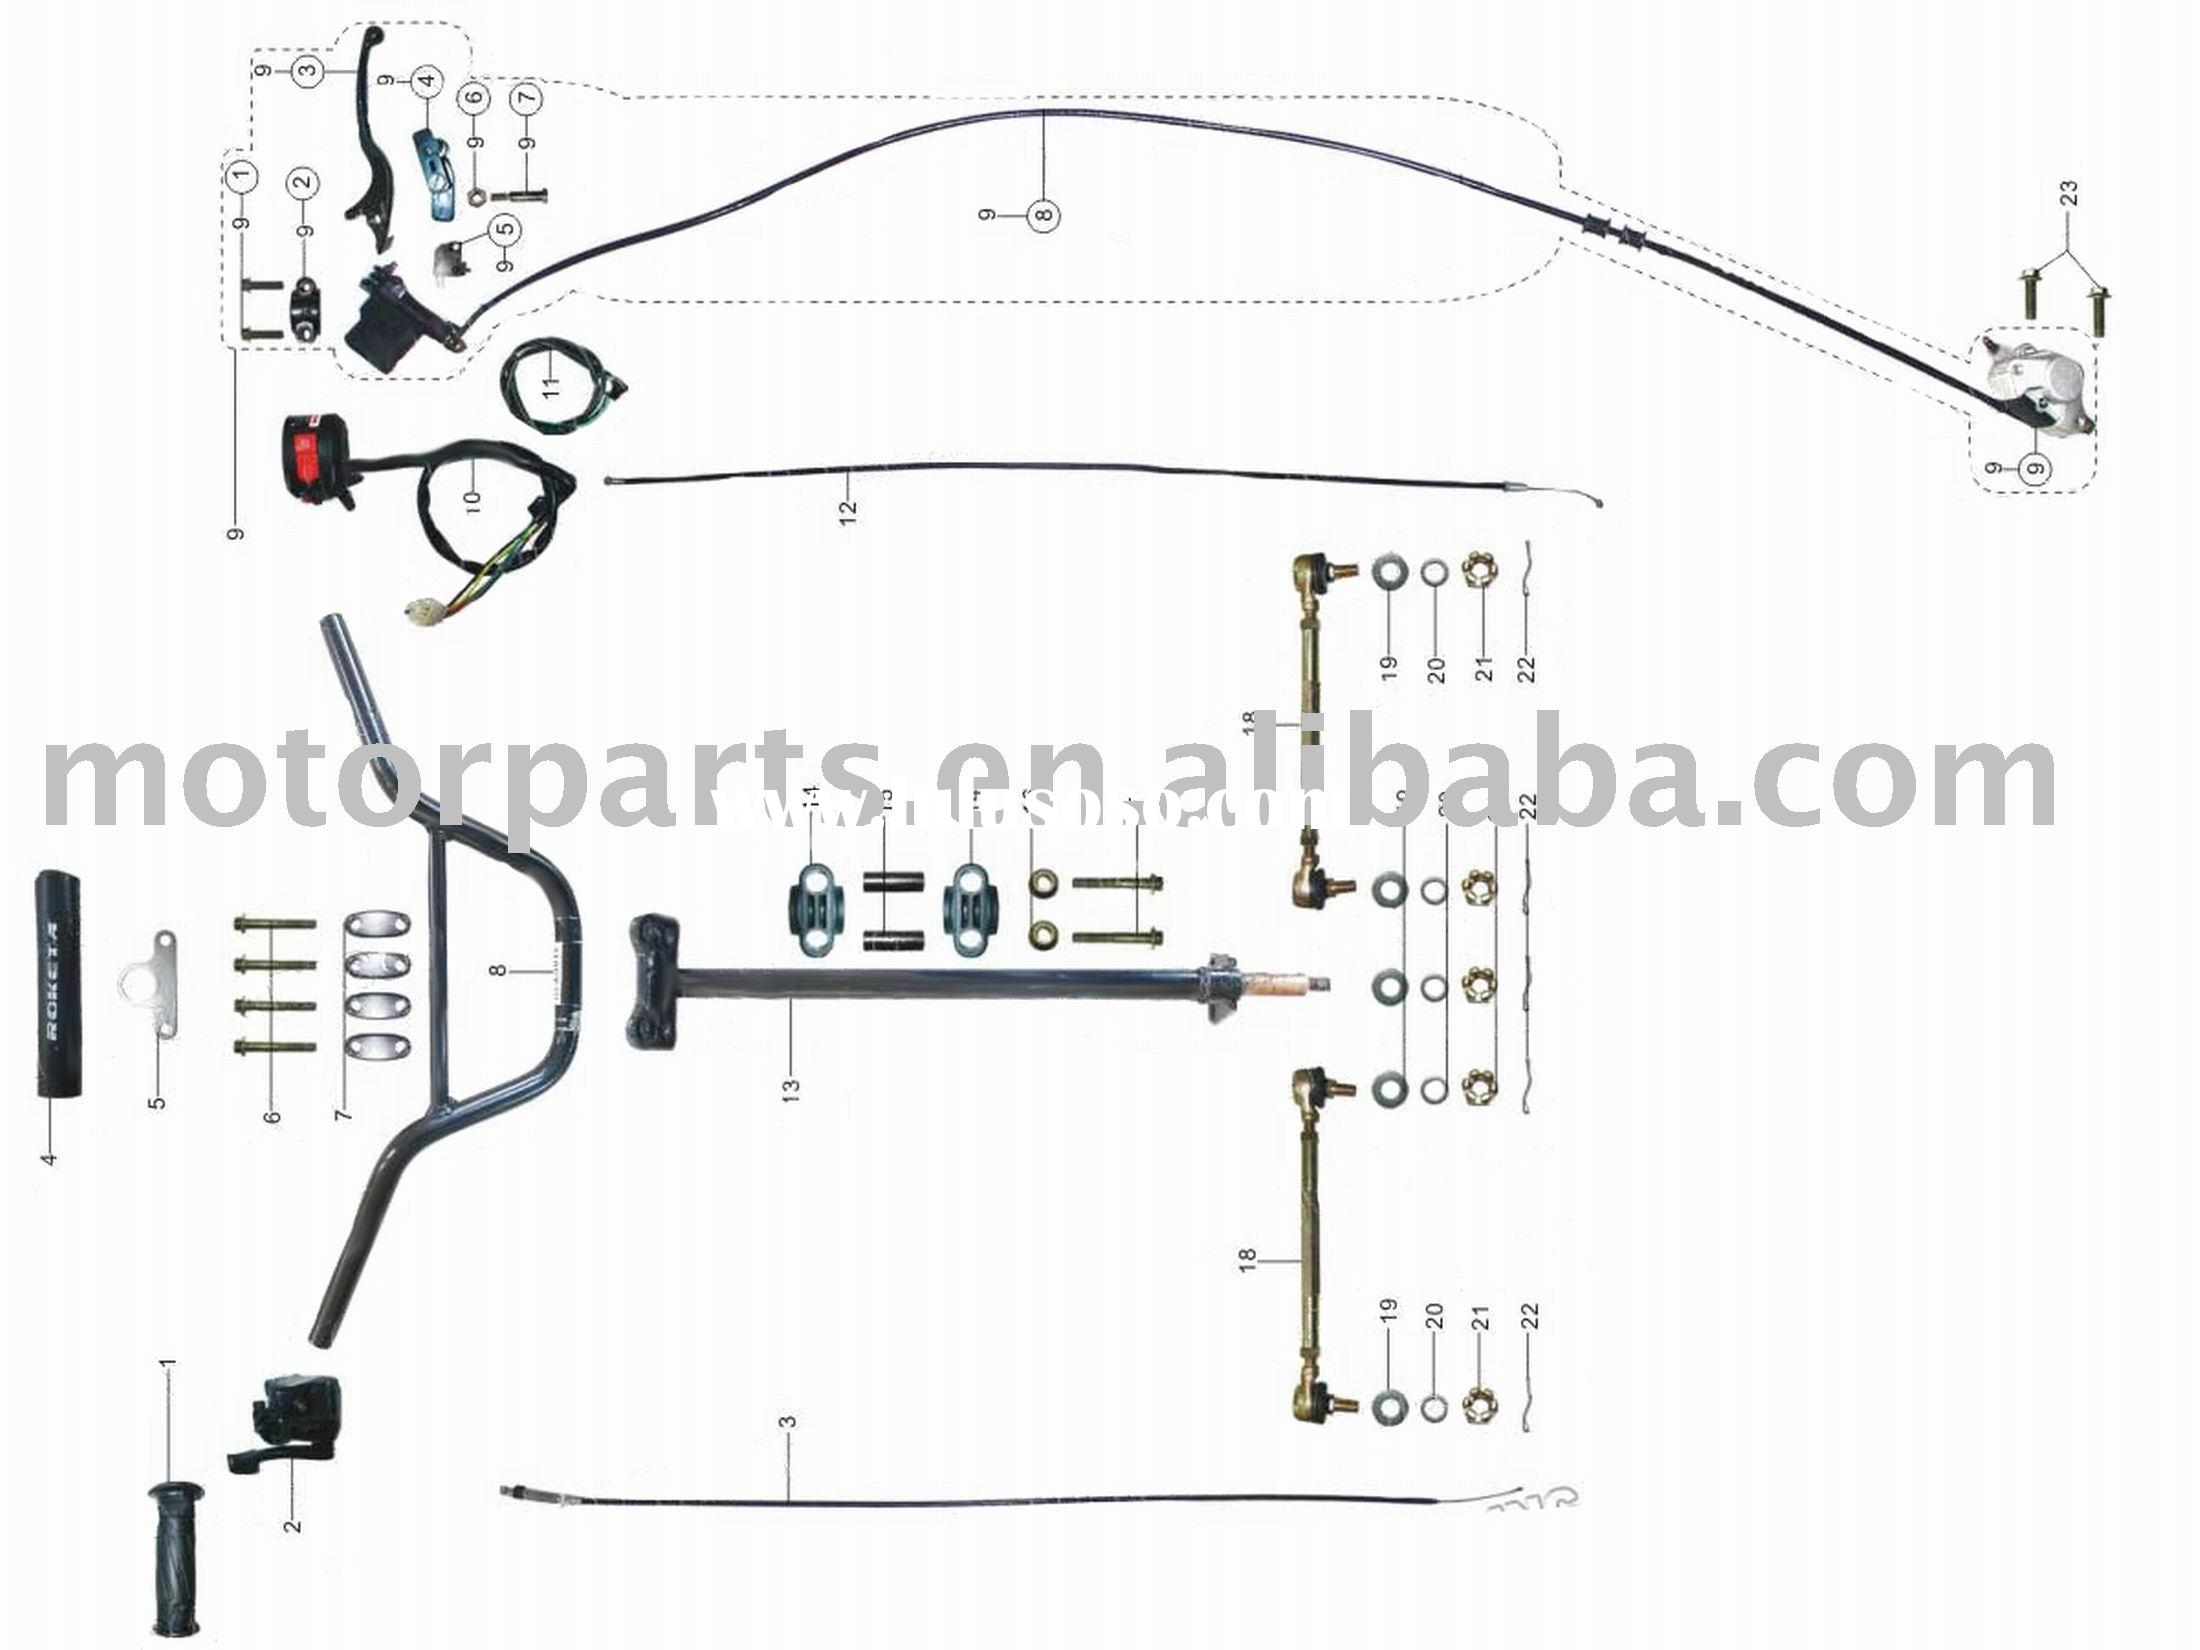 49cc Mini Quad Wiring Diagram